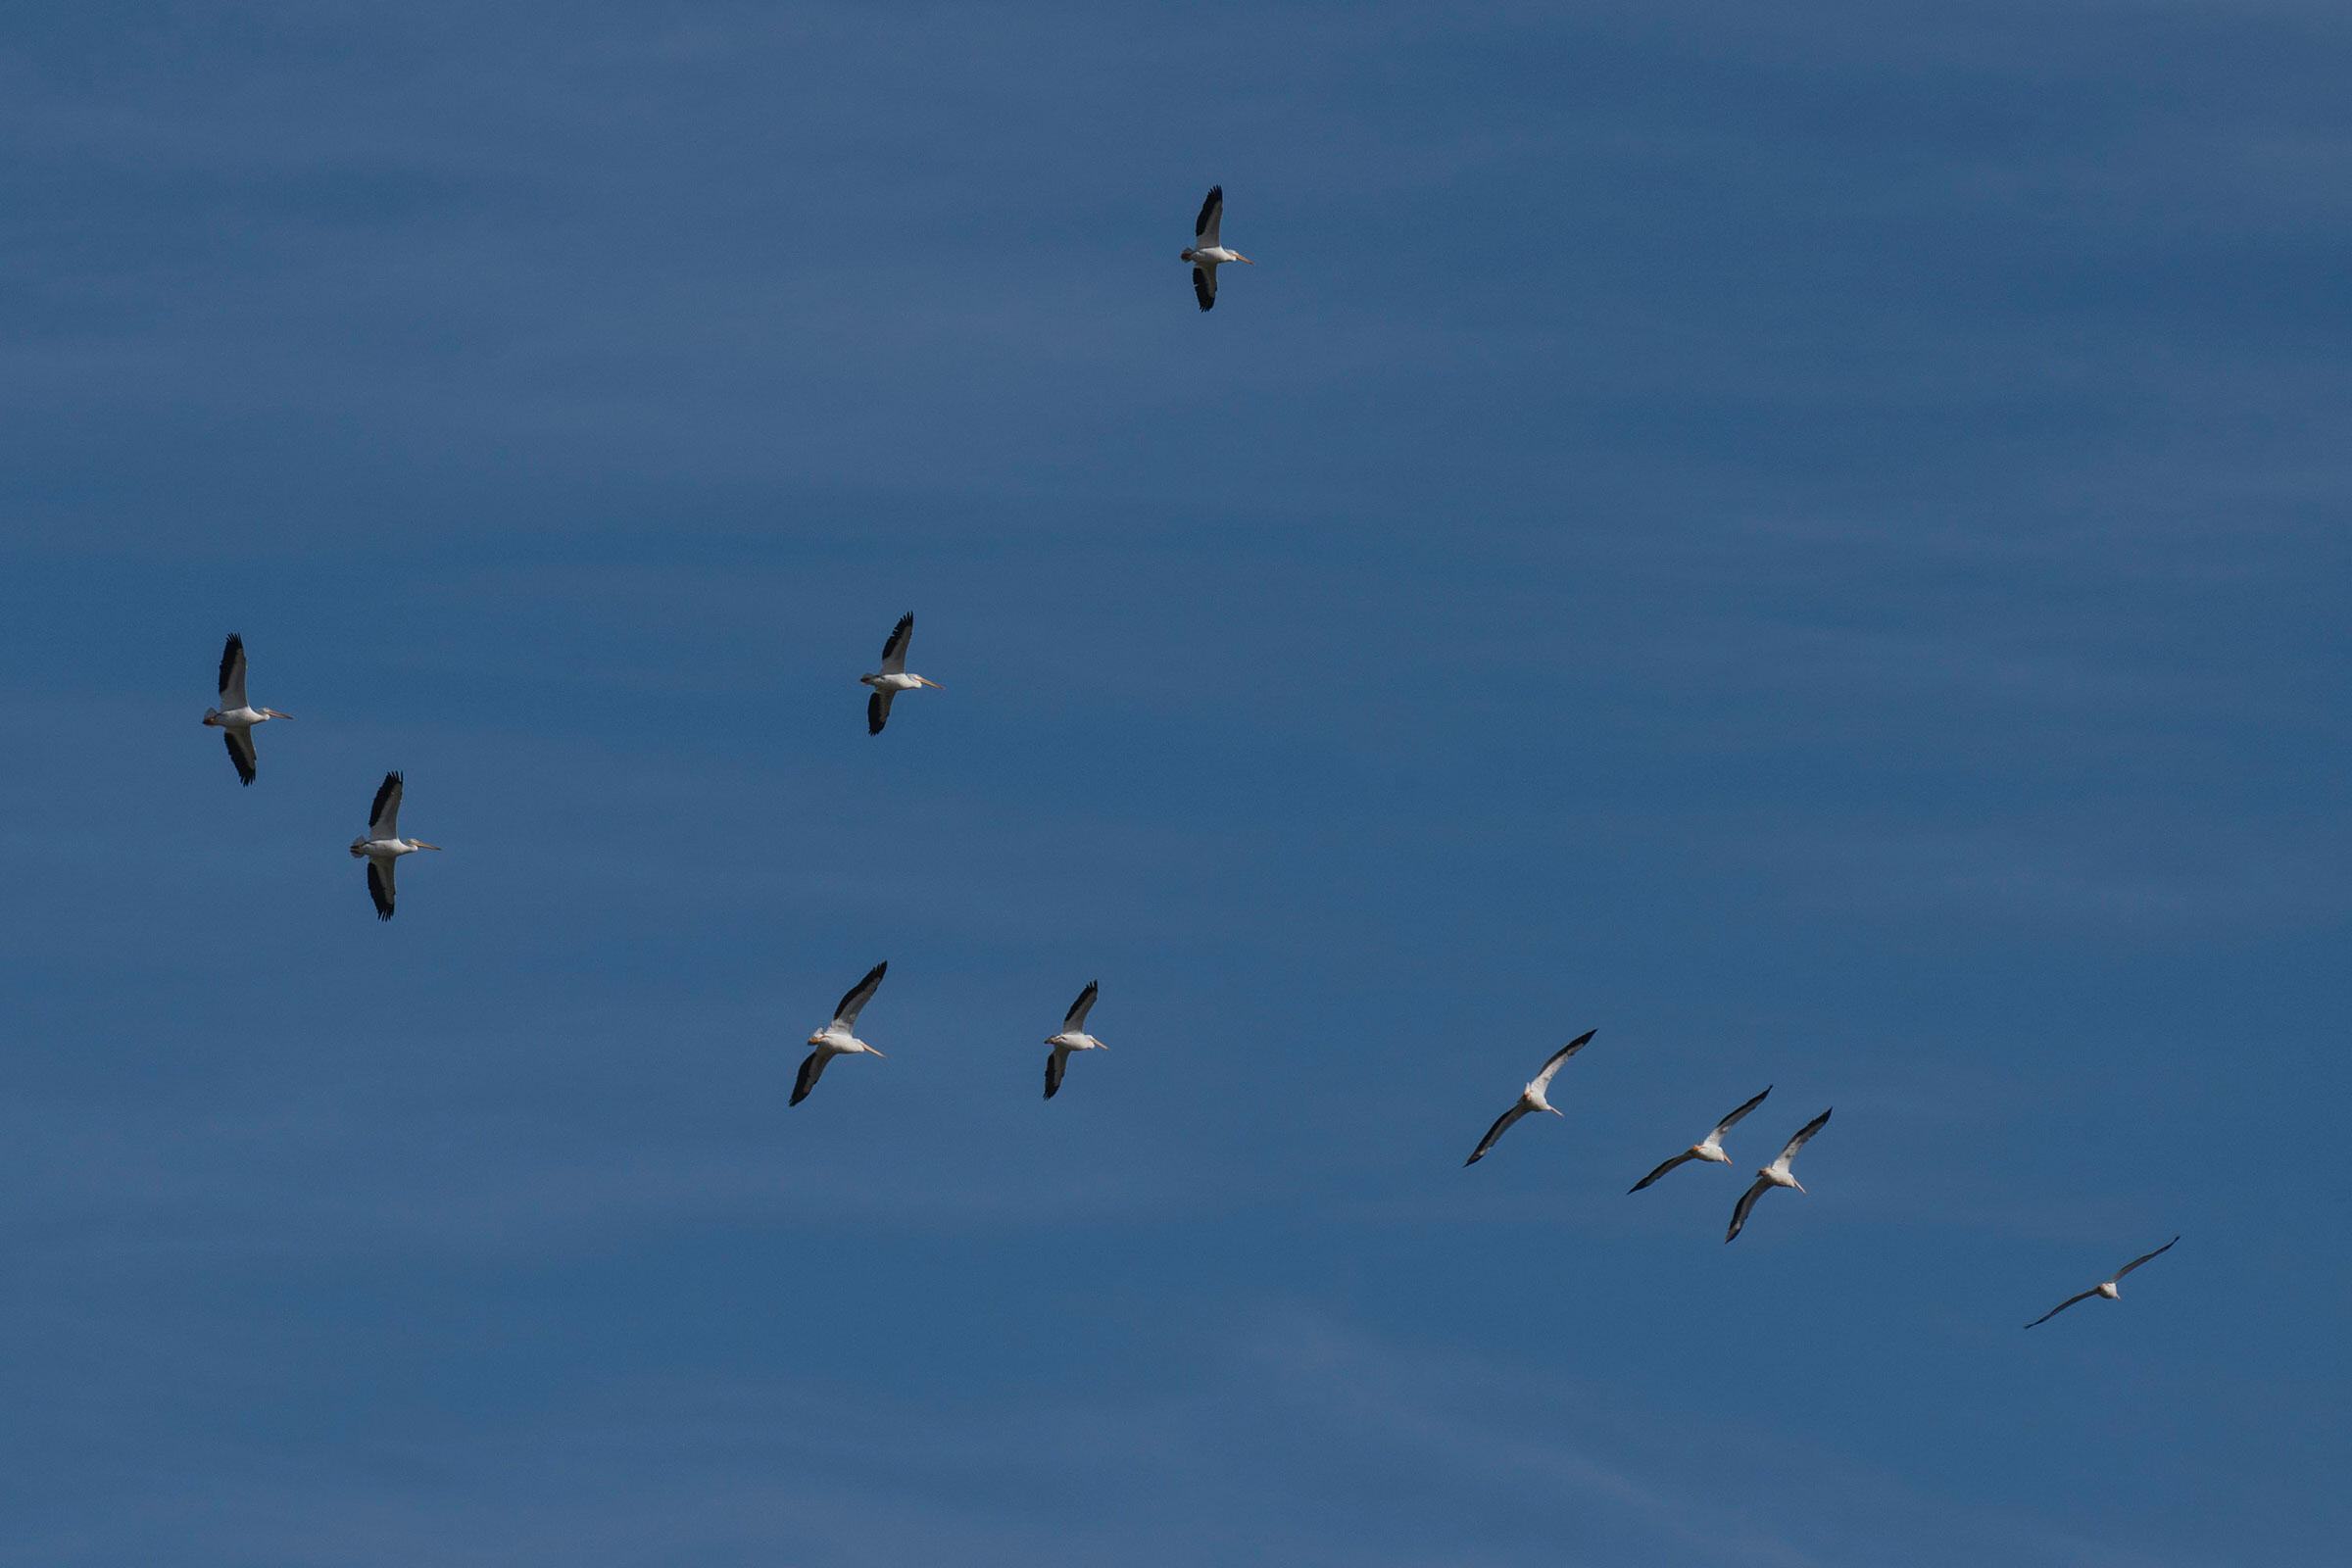 American White Pelicans fly overhead during the Christmas Bird Count on January 4, 2019. The birds congregate and fish in resecas, pond-like watering holes found in former bends of the Rio Grande River. Verónica G. Cárdenas